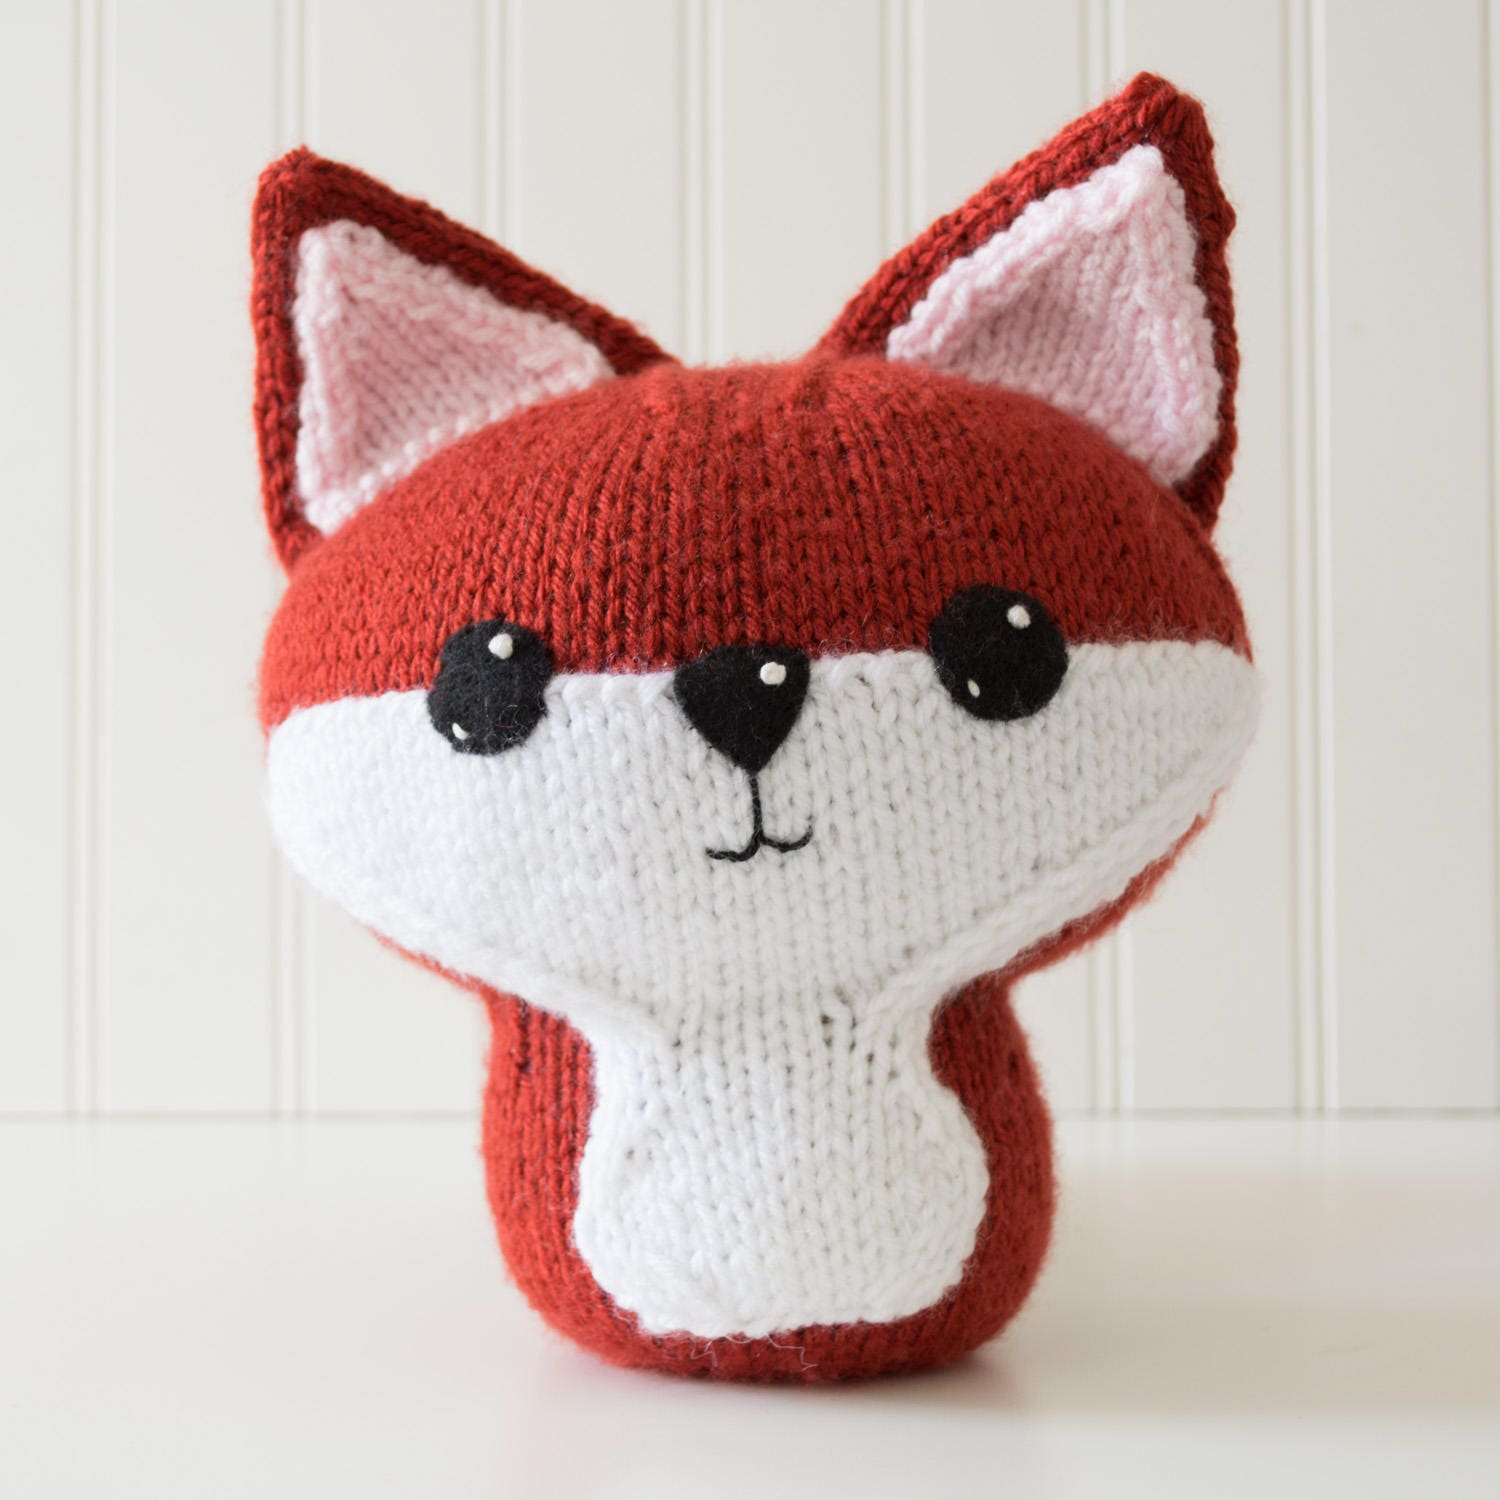 Knitting Patterns For Forest Animals : Knit Fox Amigurumi Pattern Forest Animal Amigurumi